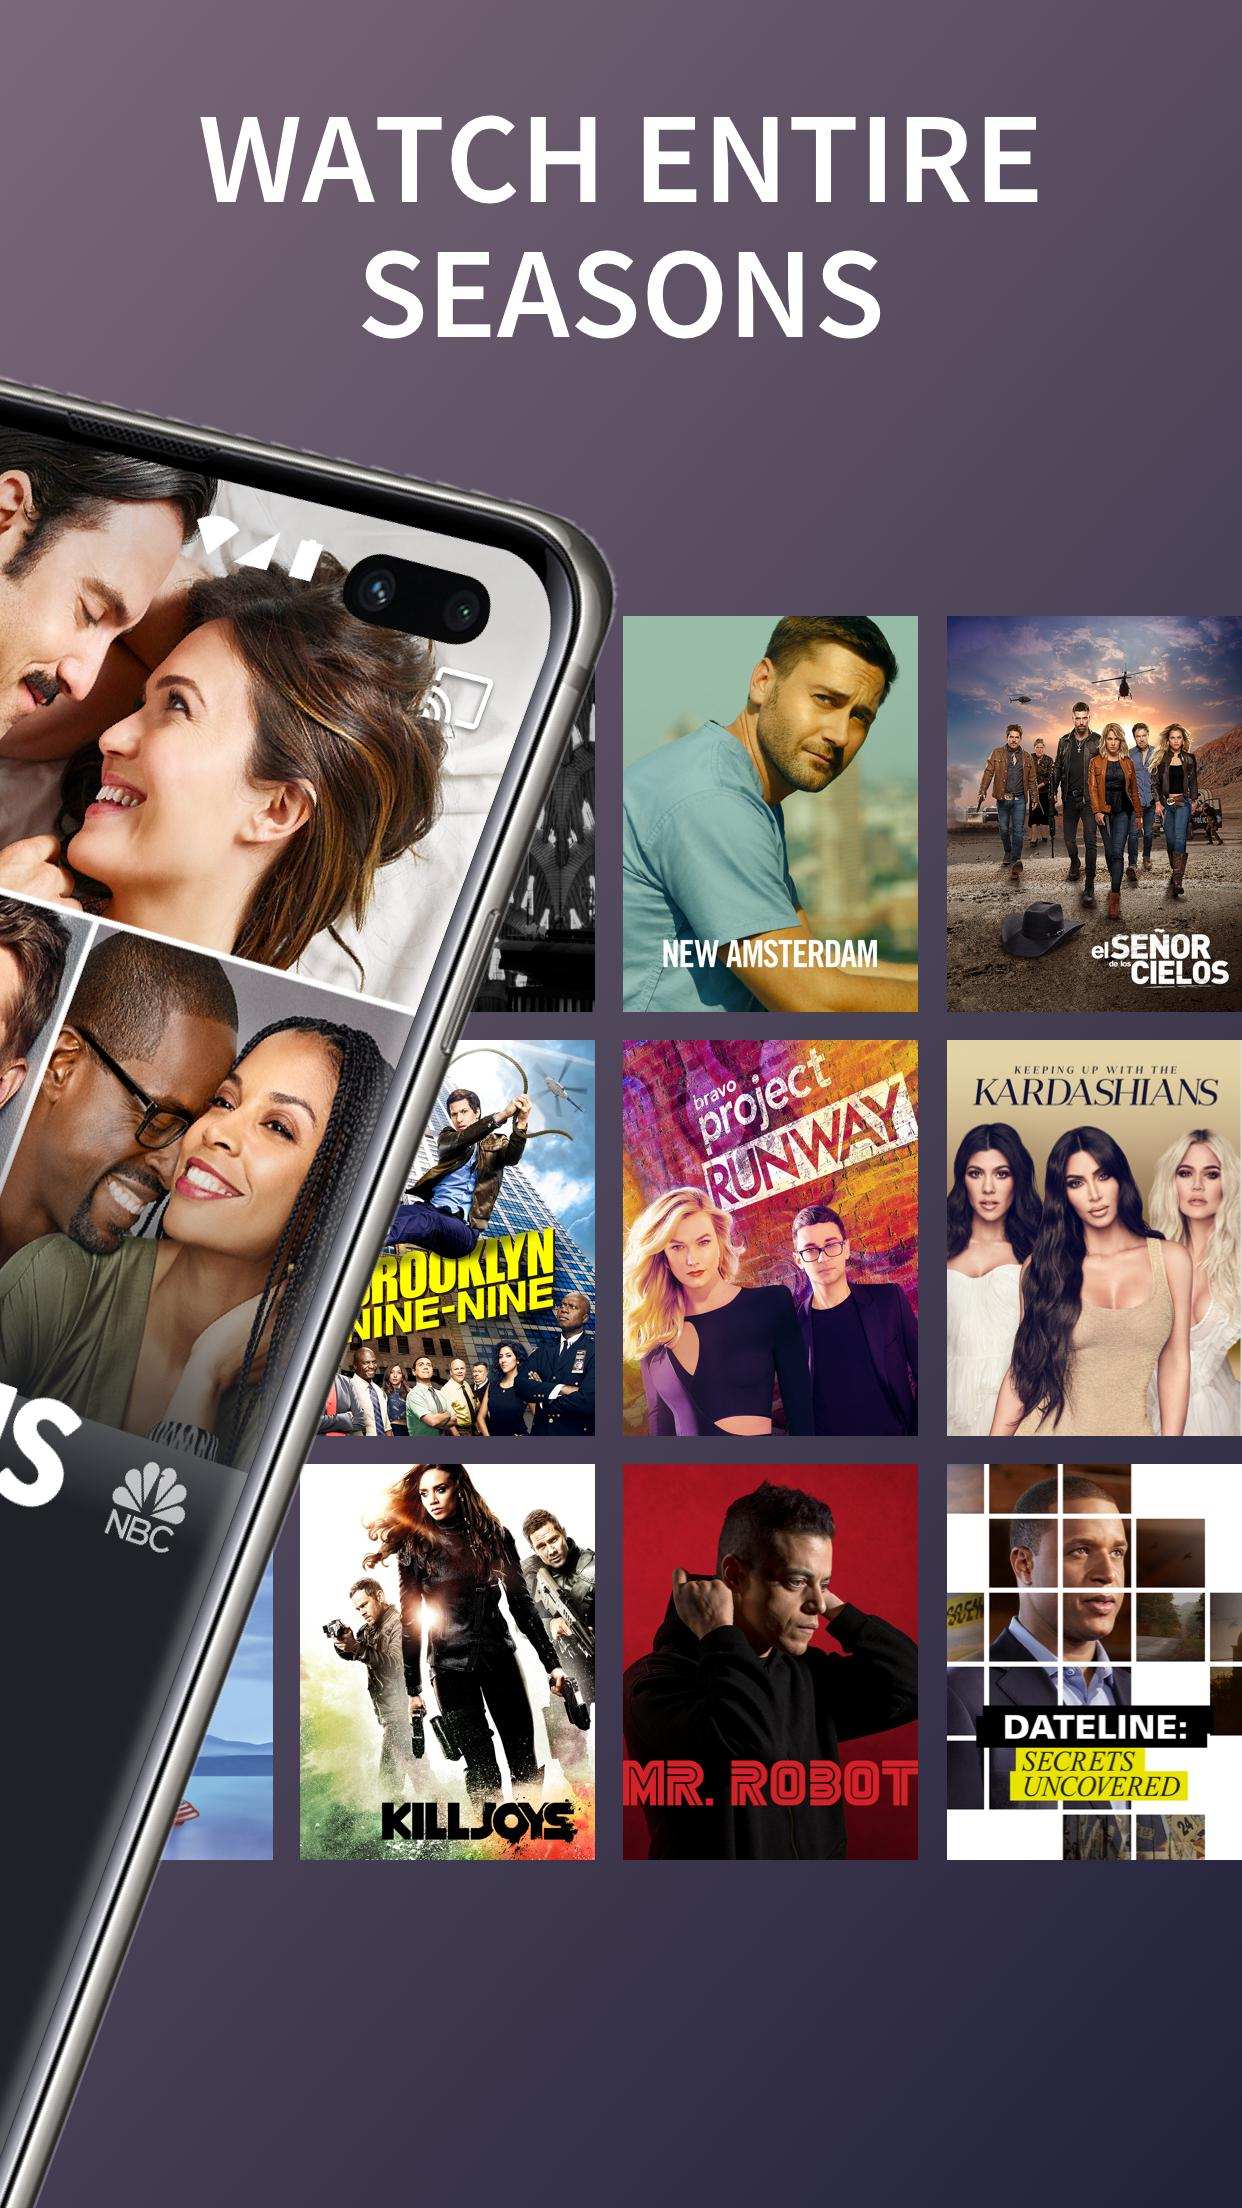 The NBC App - Stream Live TV and Episodes for Free 7.4.1 Screenshot 2